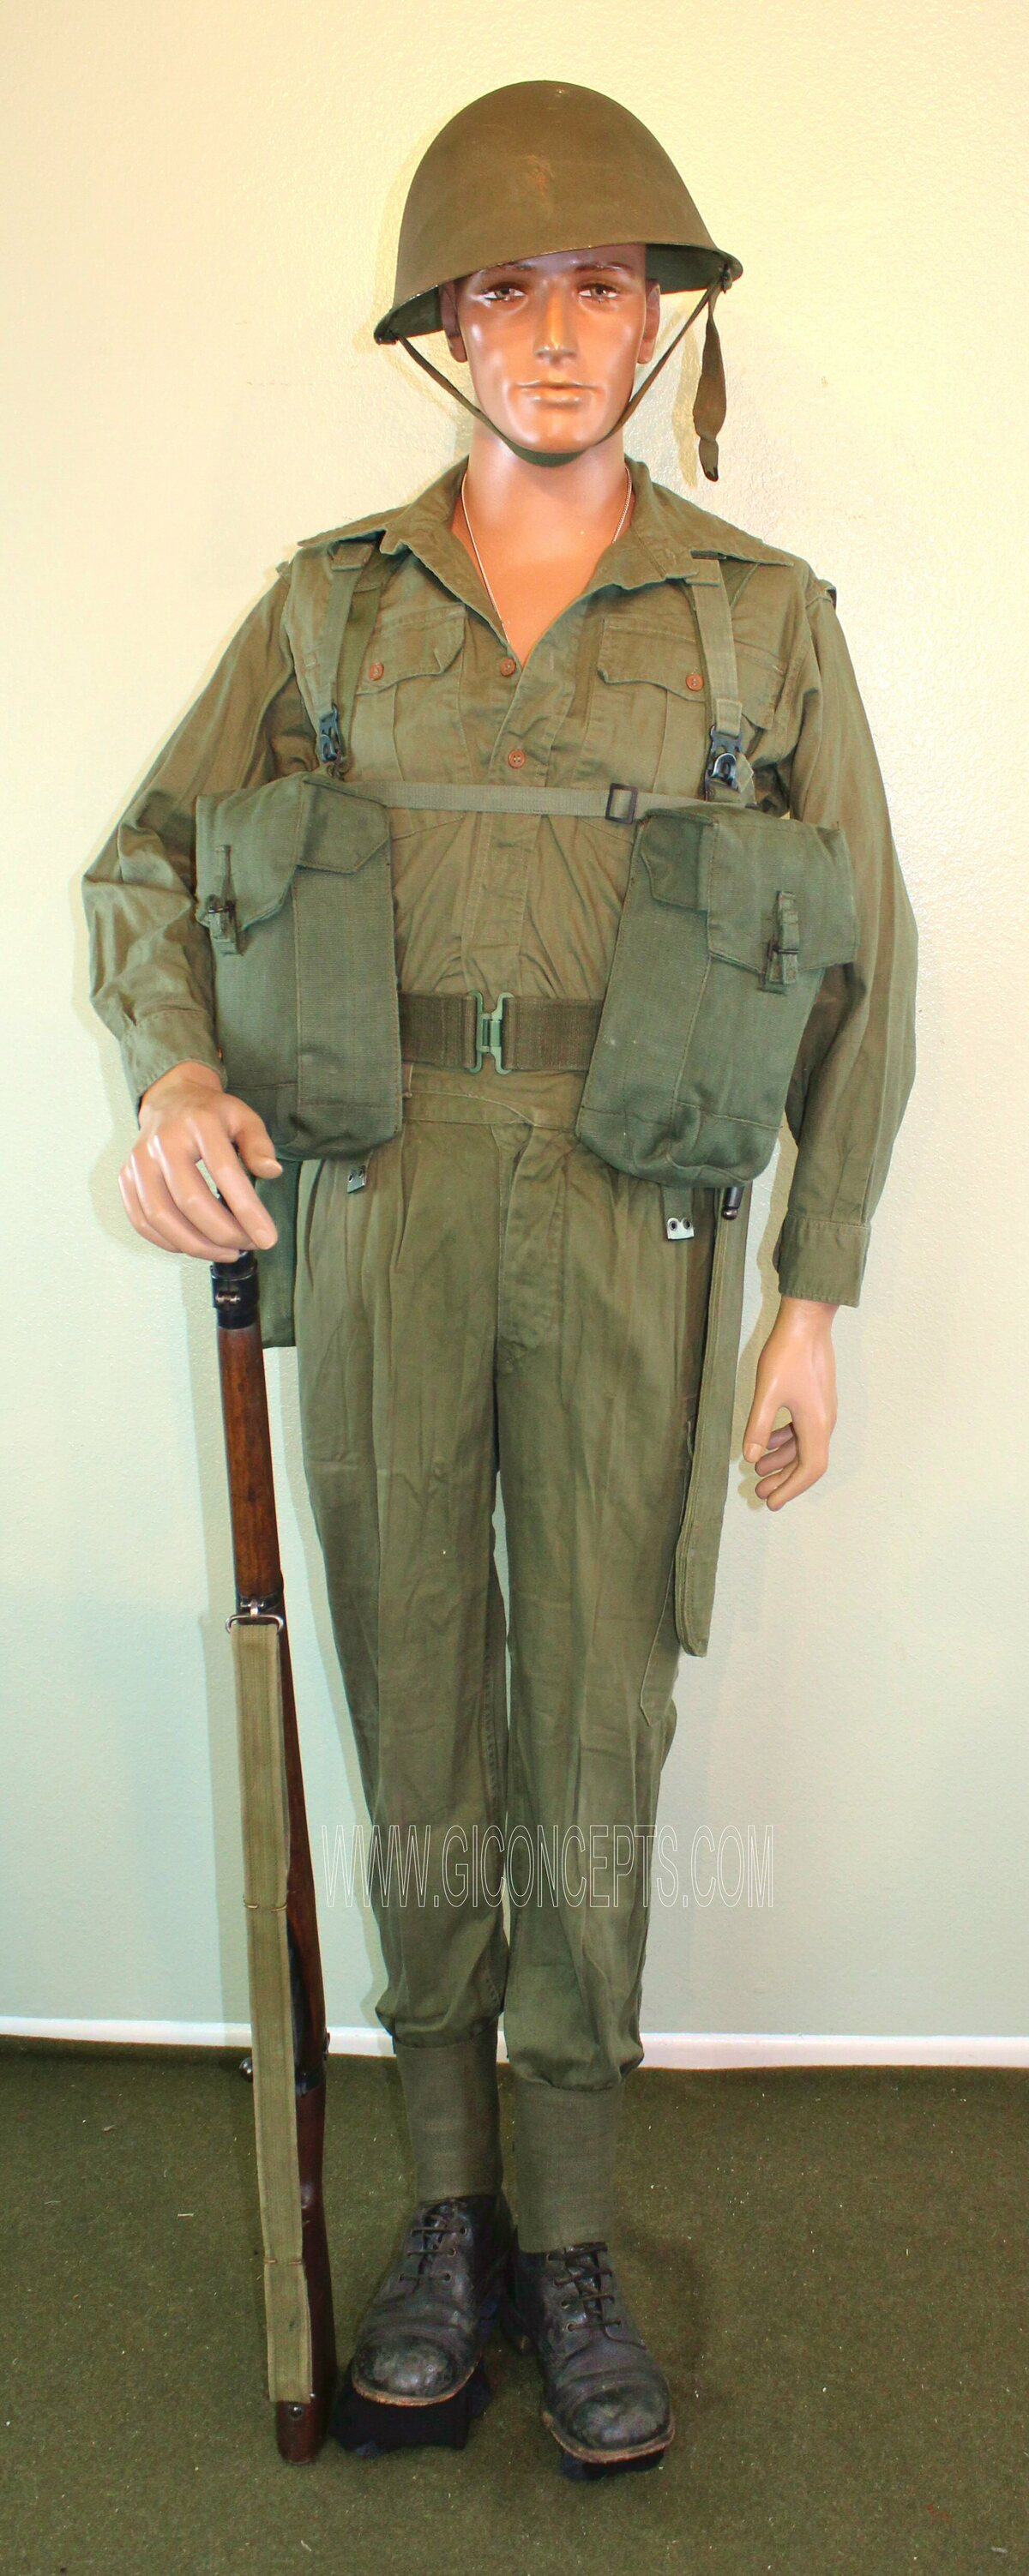 British Army Tropical Uniform P44 Equipment Malaya 1950